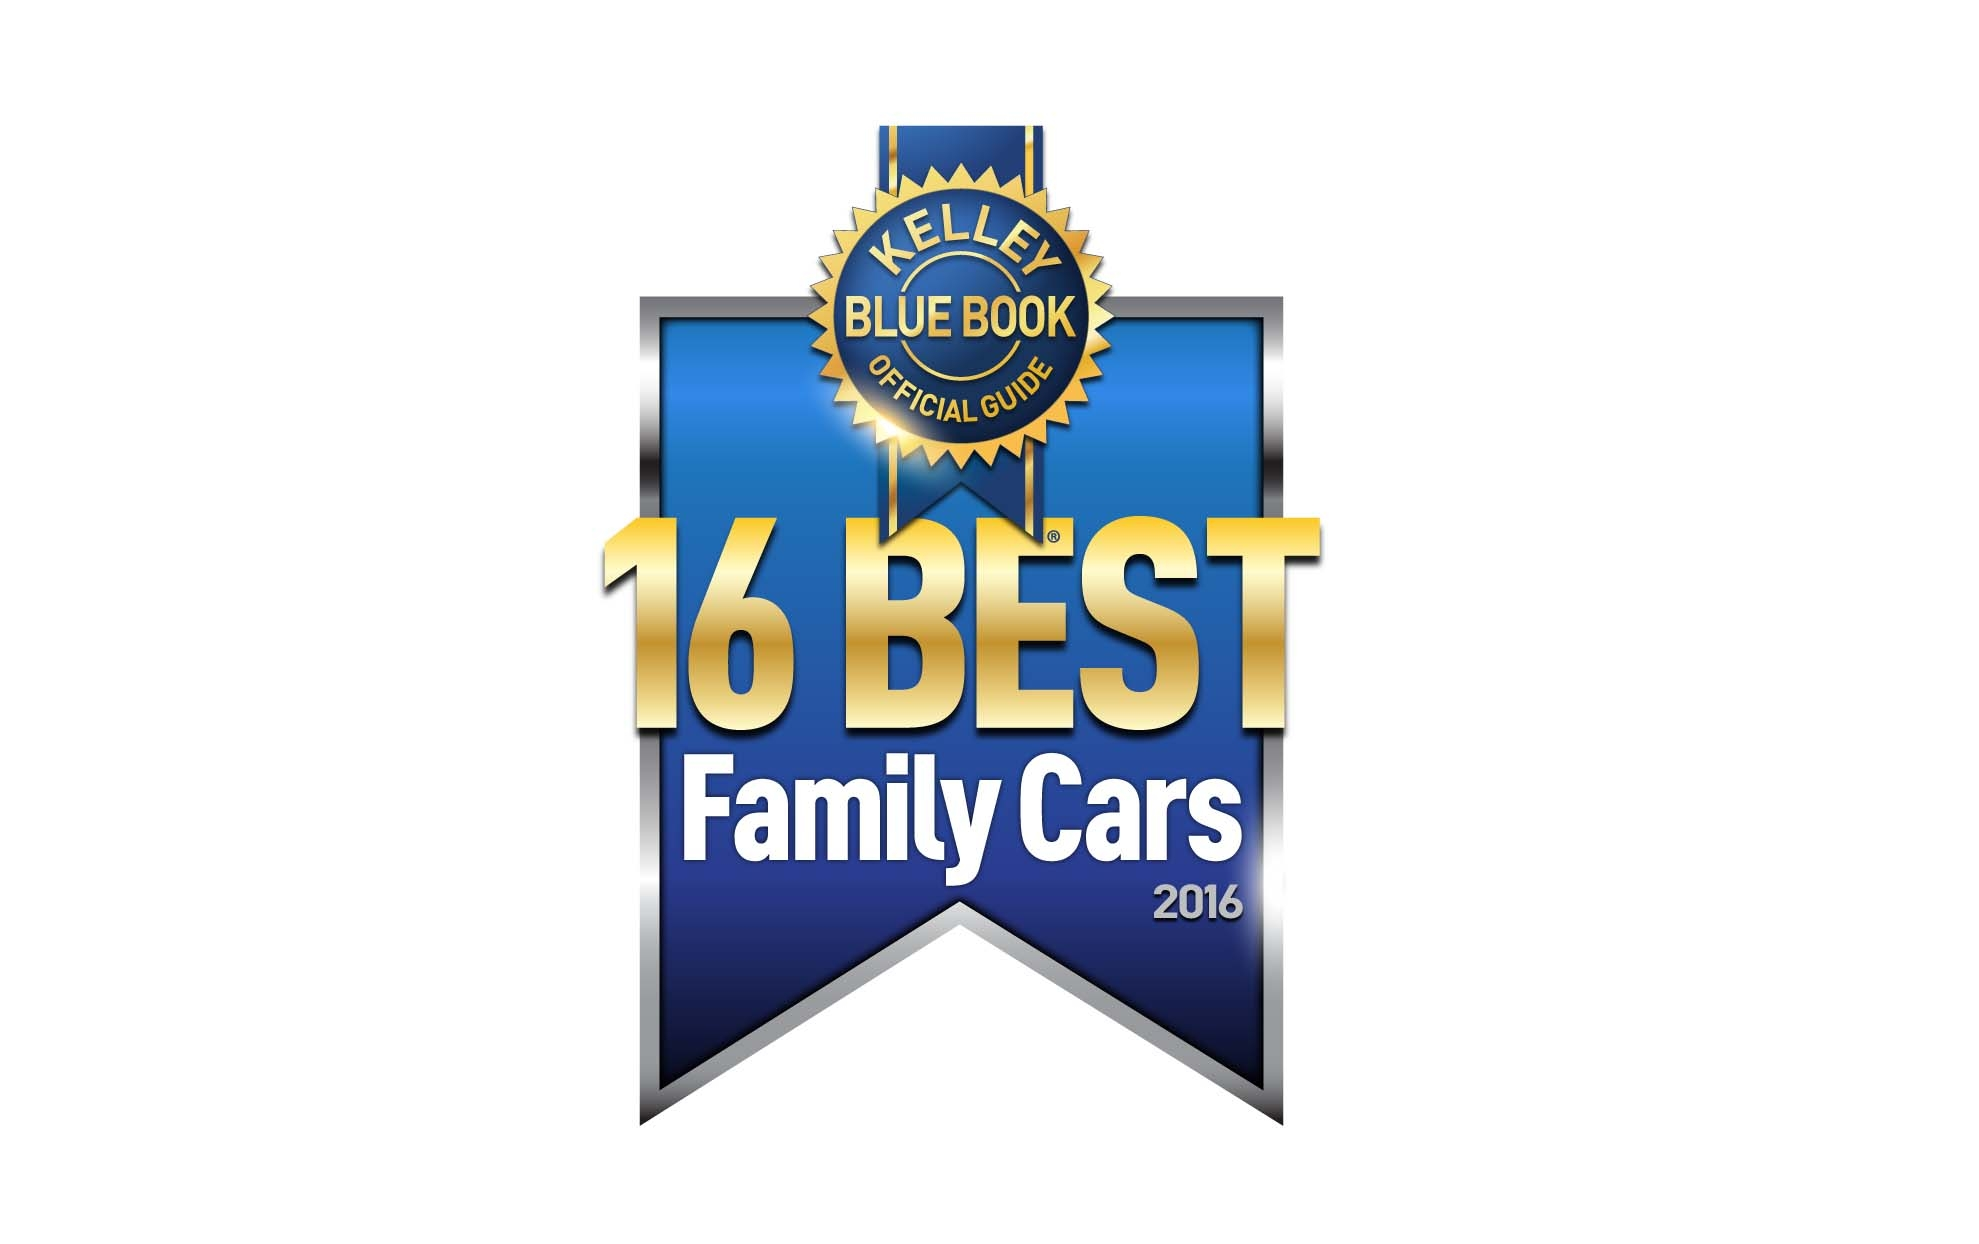 kelley blue book dealer invoice price kelley blue book names 16 best family cars of 2016 feb 4 2016 1979 X 1244